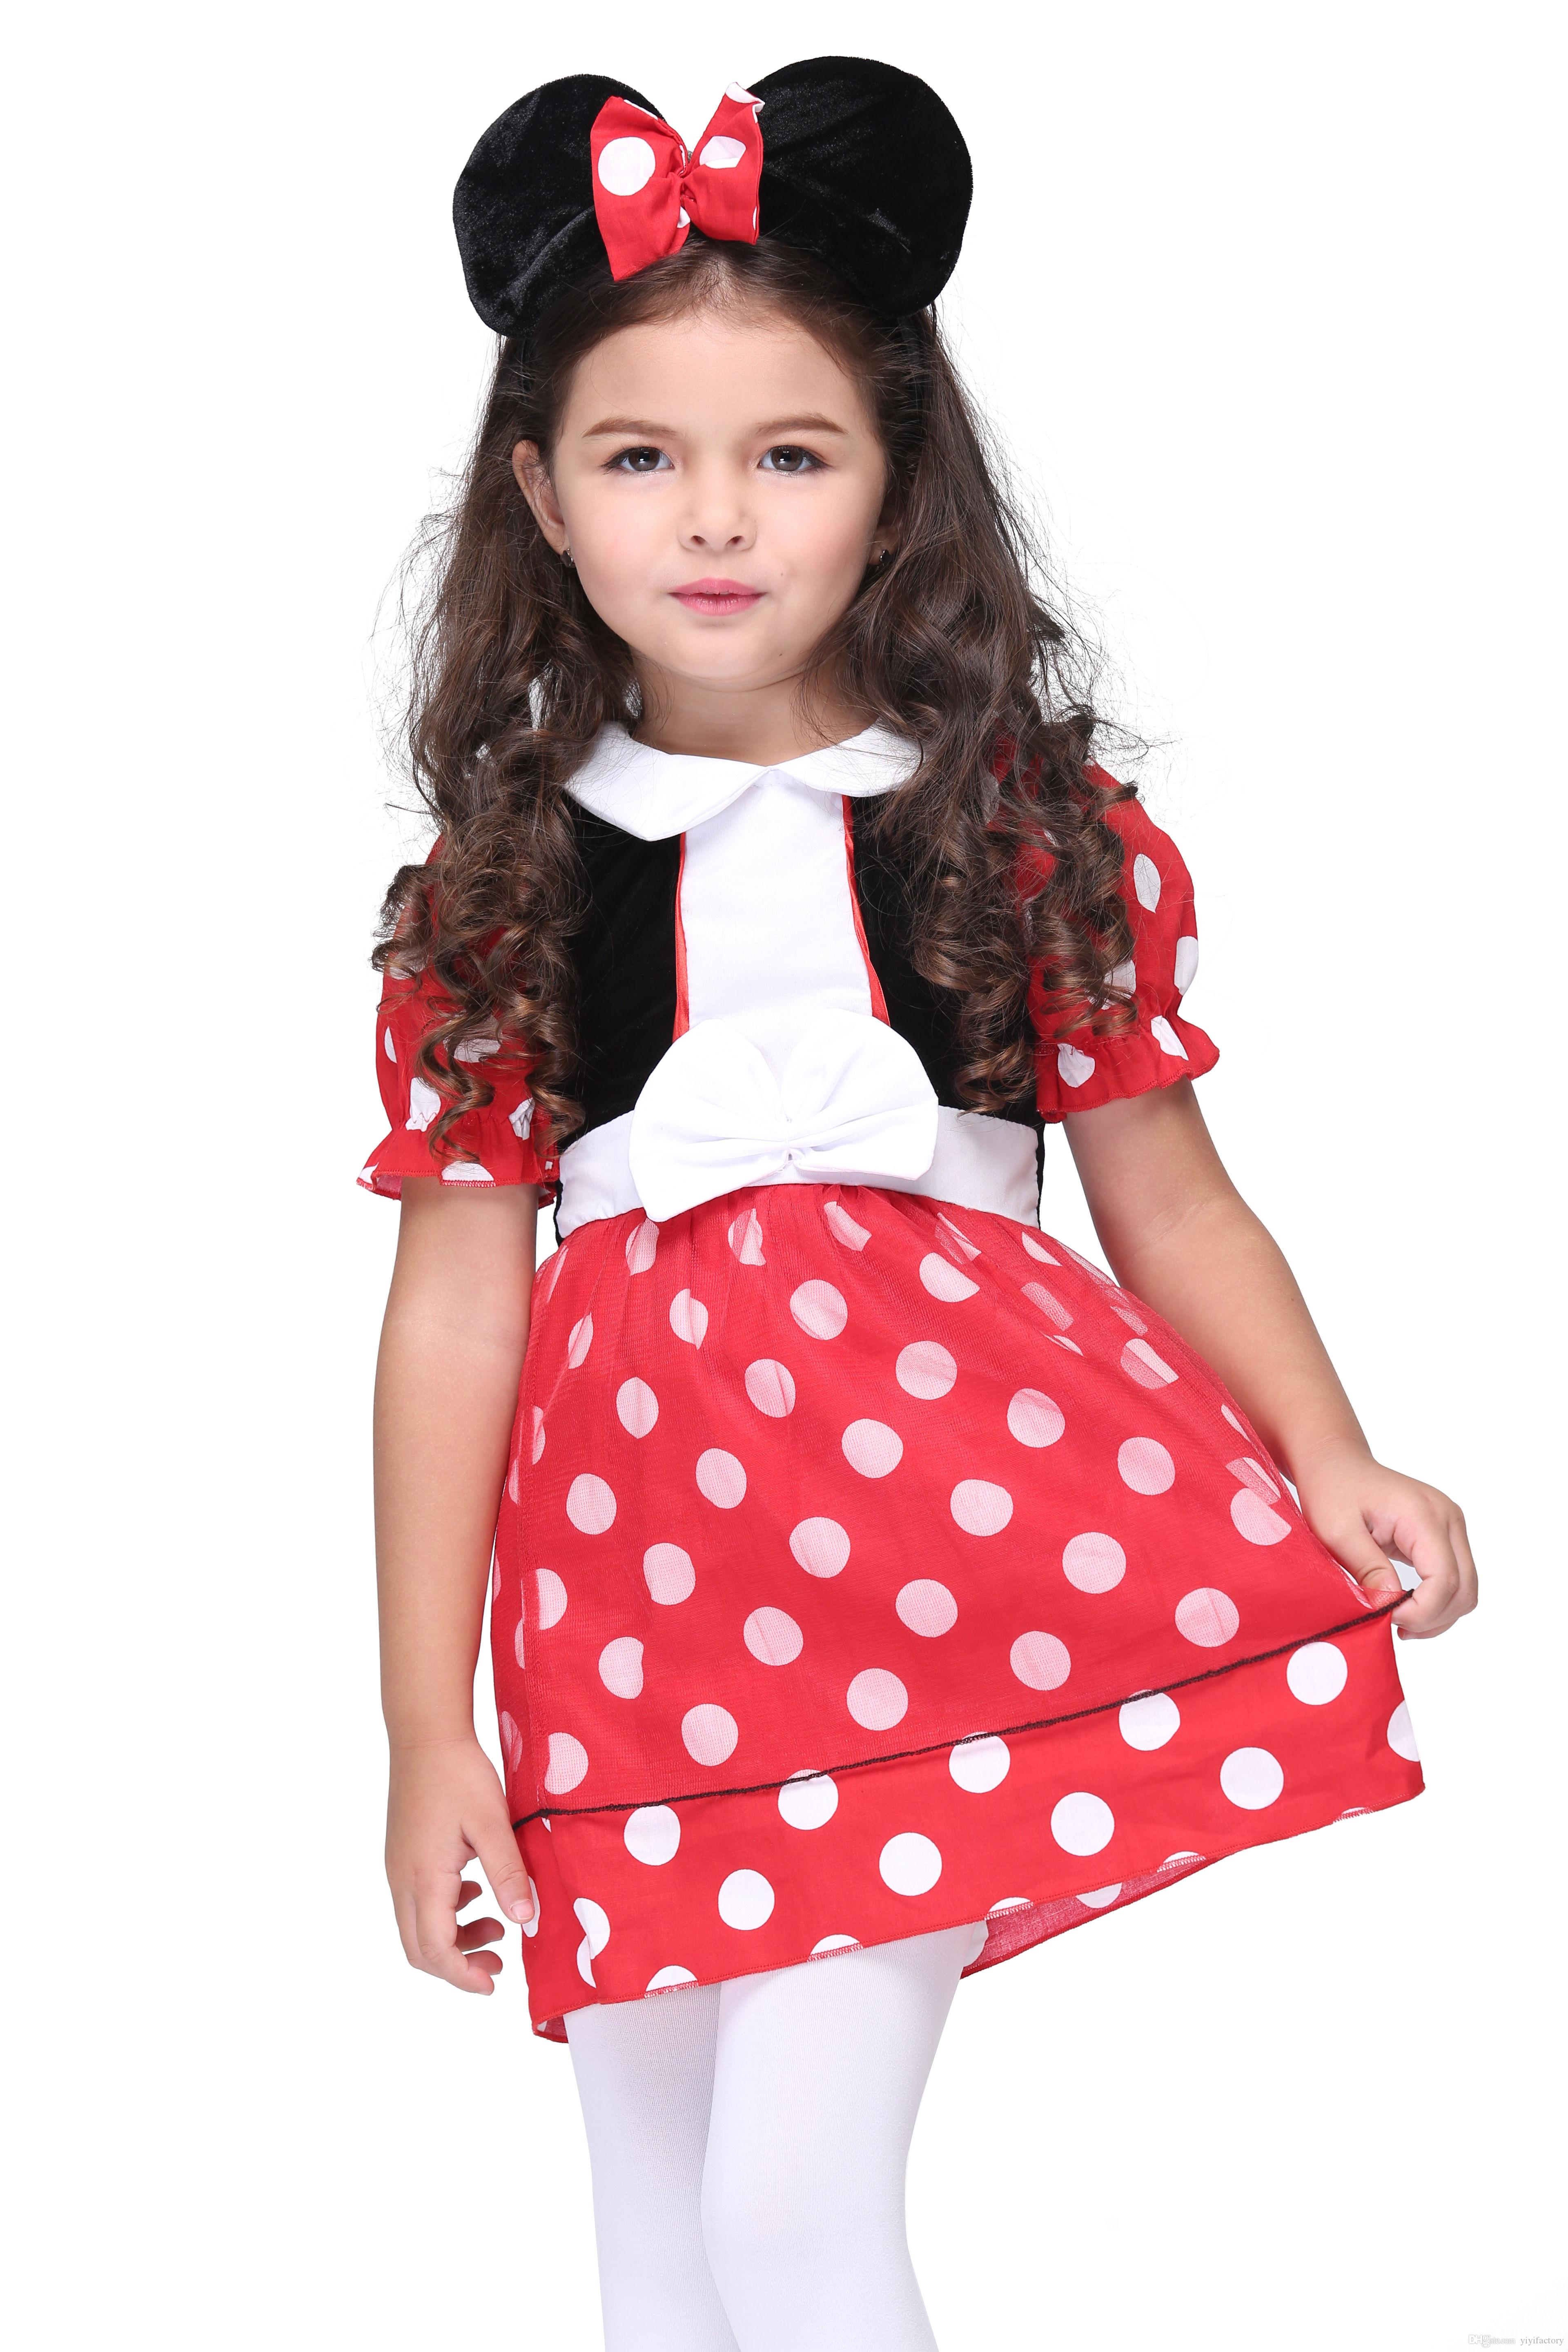 Online Cheap Kids Halloween Mickey Mouse Costumes Party Girls Red Polka Dots Mickey Minnie Dresses u0026 Mouse Ear Tire Outfits Children Cartoon Costumes By ...  sc 1 st  DHgate.com & Online Cheap Kids Halloween Mickey Mouse Costumes Party Girls Red ...